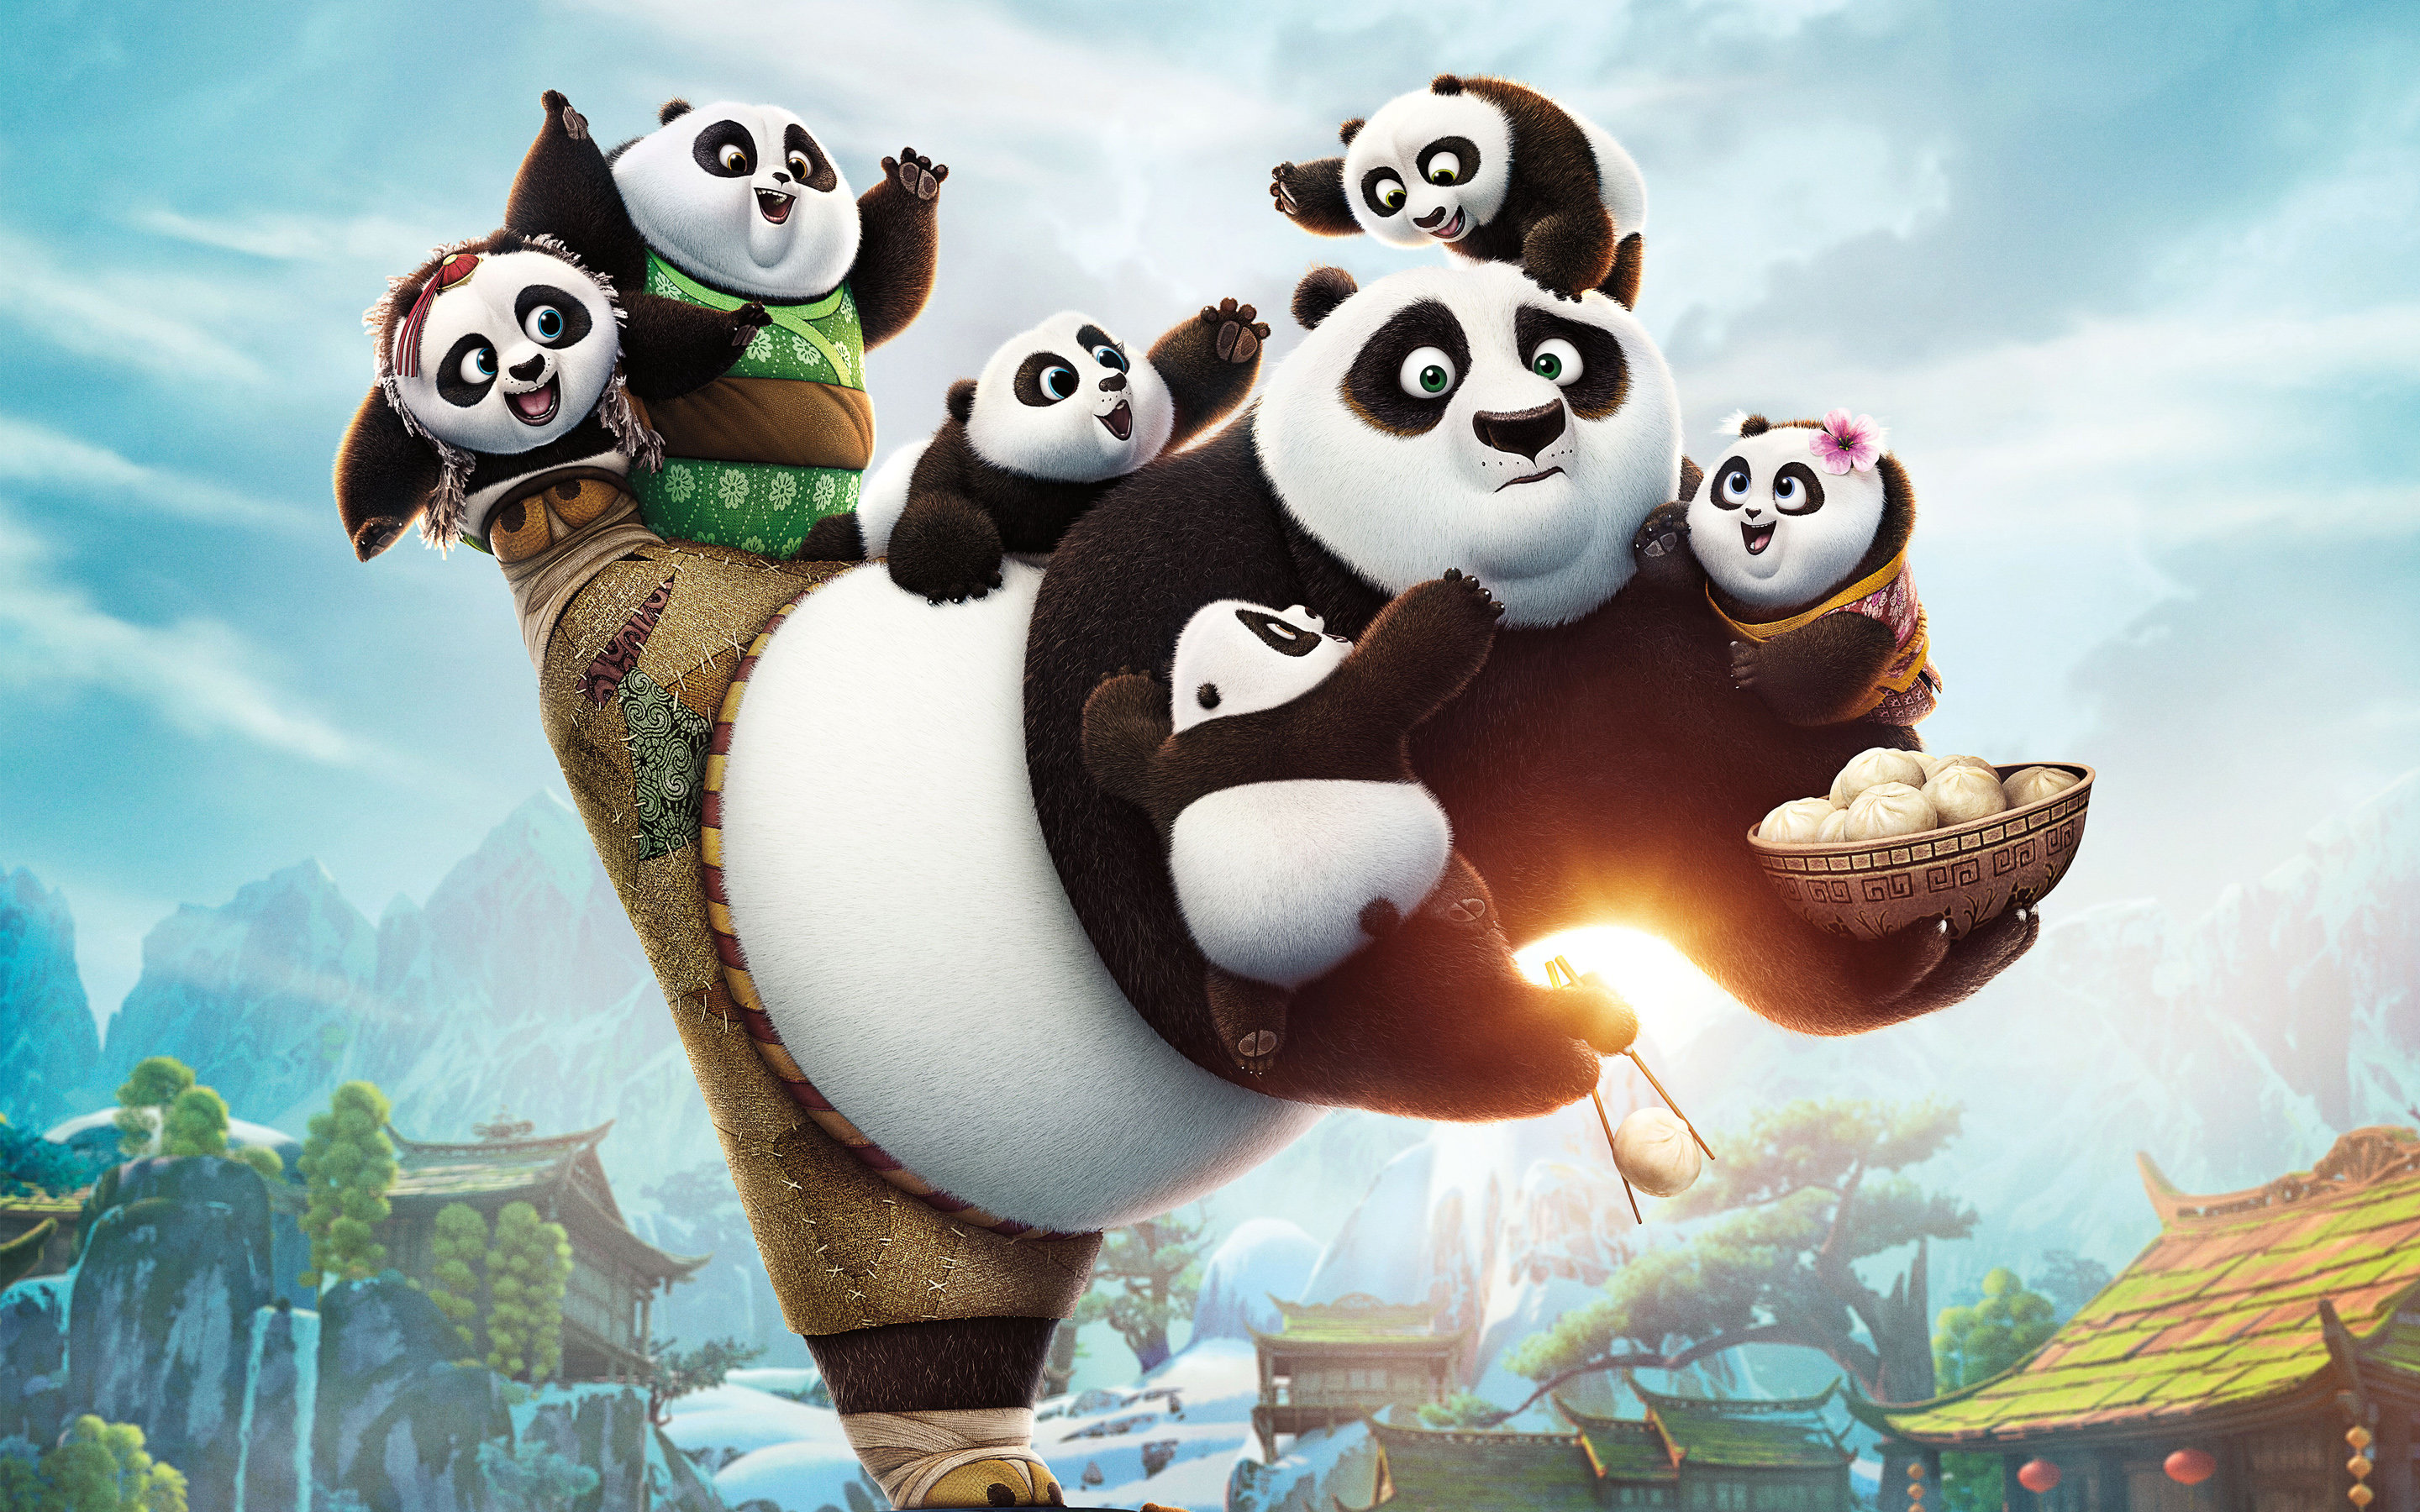 Best Kung Fu Panda 3 wallpaper ID:209021 for High Resolution hd 2880x1800 computer